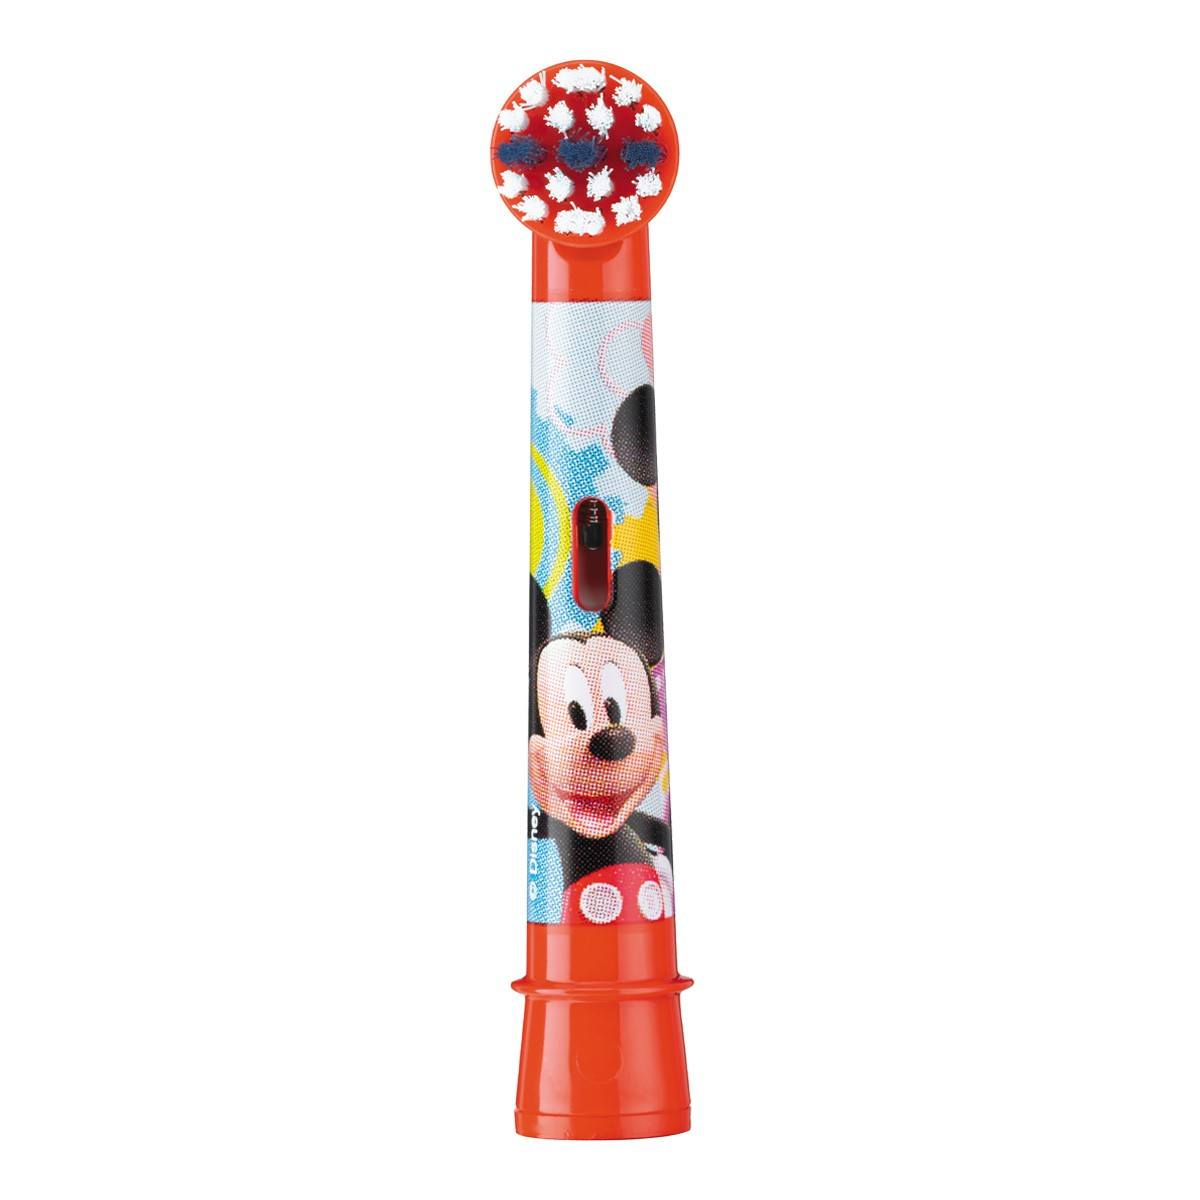 Oral-B Stages Power Kids toothbrush head